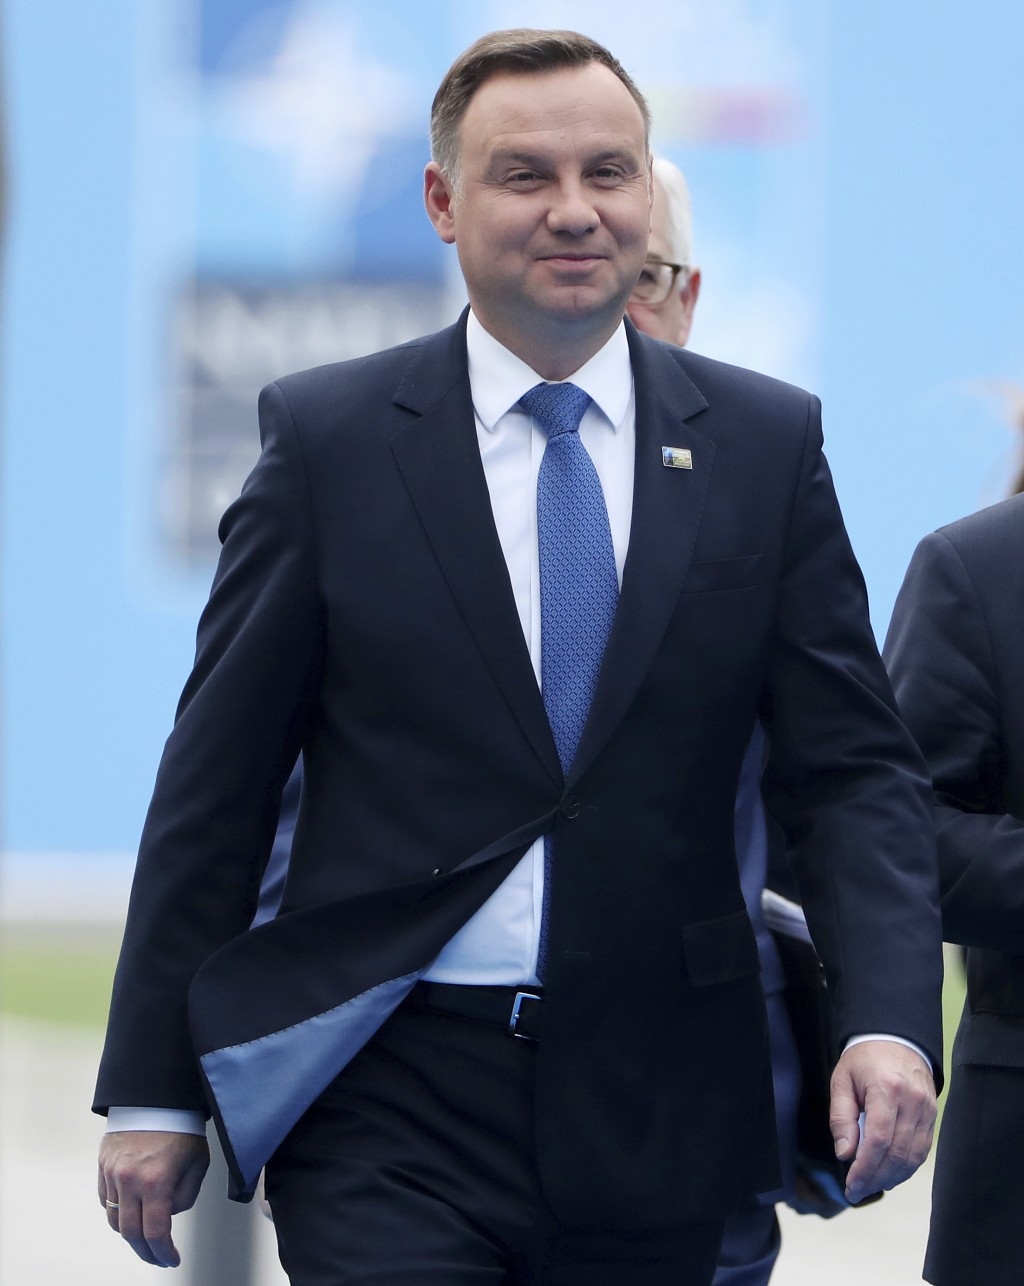 Polish President Andrzej Duda arrives for the second day of a summit of heads of state and government at NATO headquarters in Brussels, Belgium, Thurs